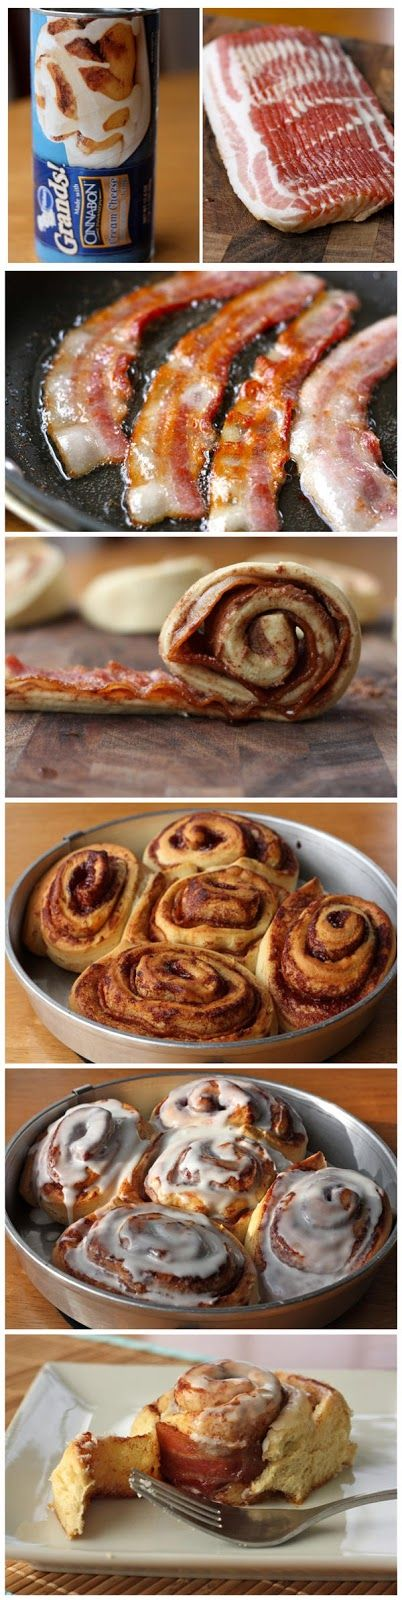 Bacon Cinnamon Rolls.